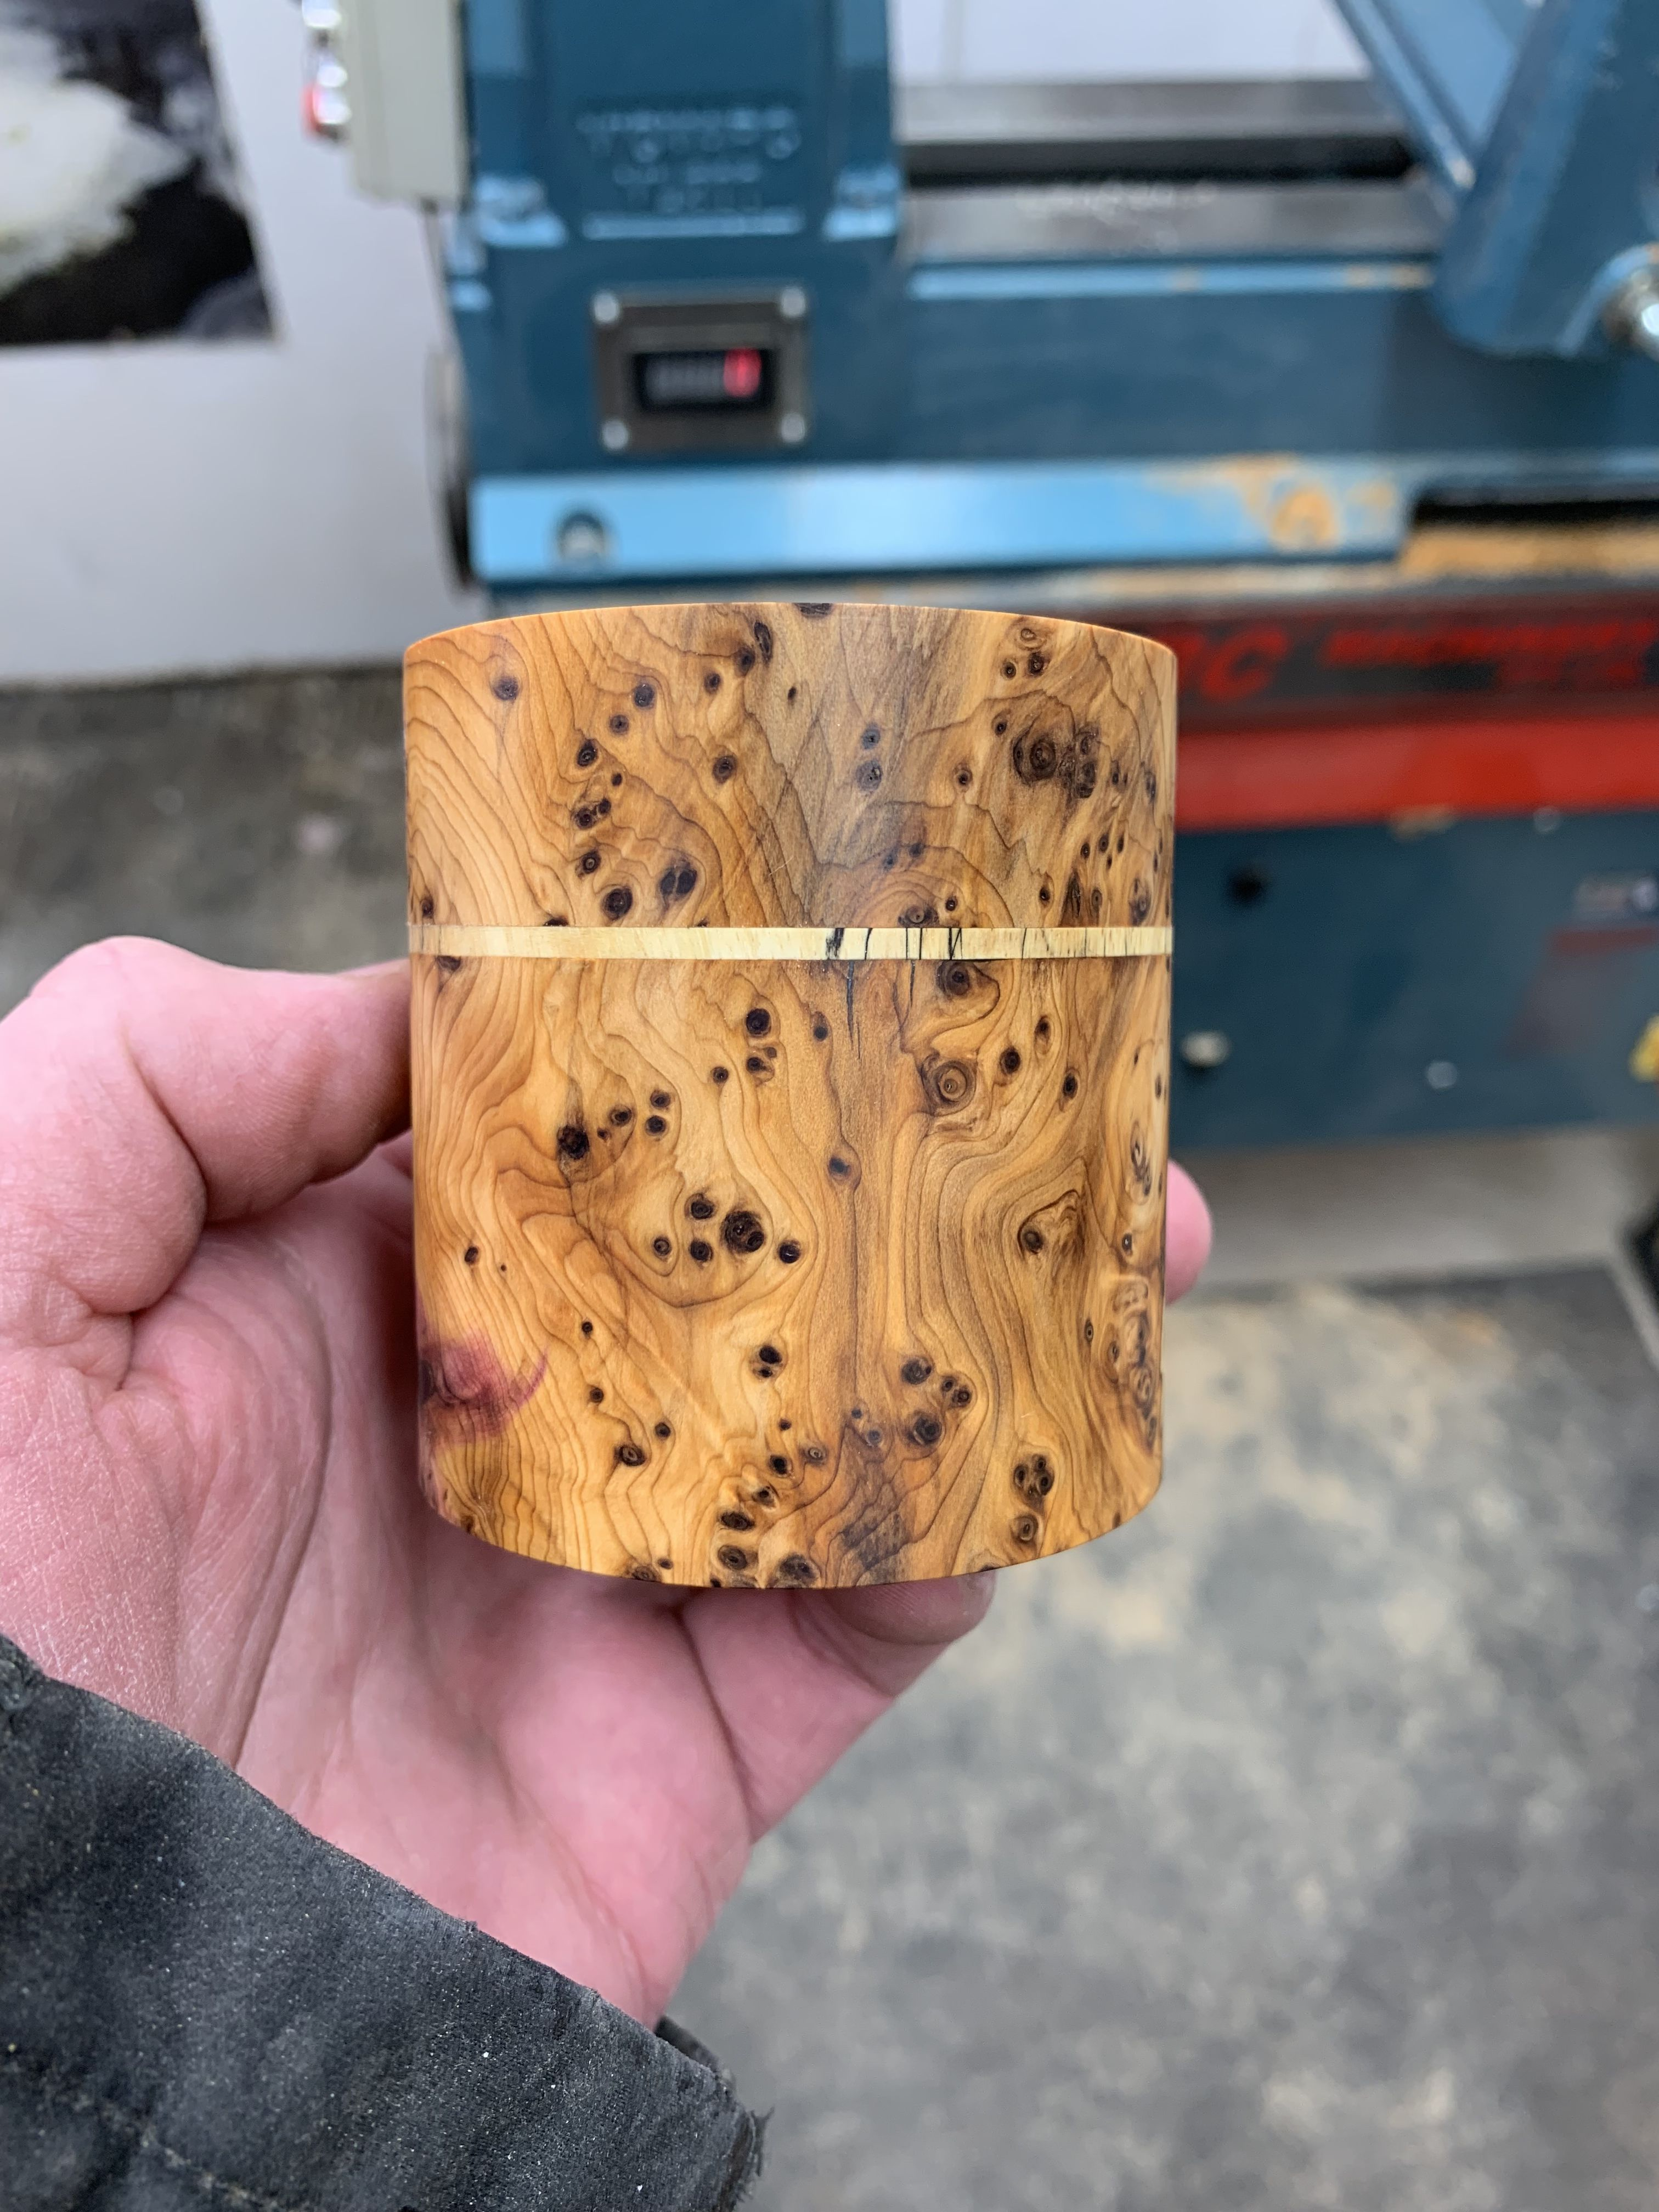 Burr Yew Spalted Tamarind Lidded Box Made By George Watkins Wood Turning Artisan Bowl Wood Turning Projects